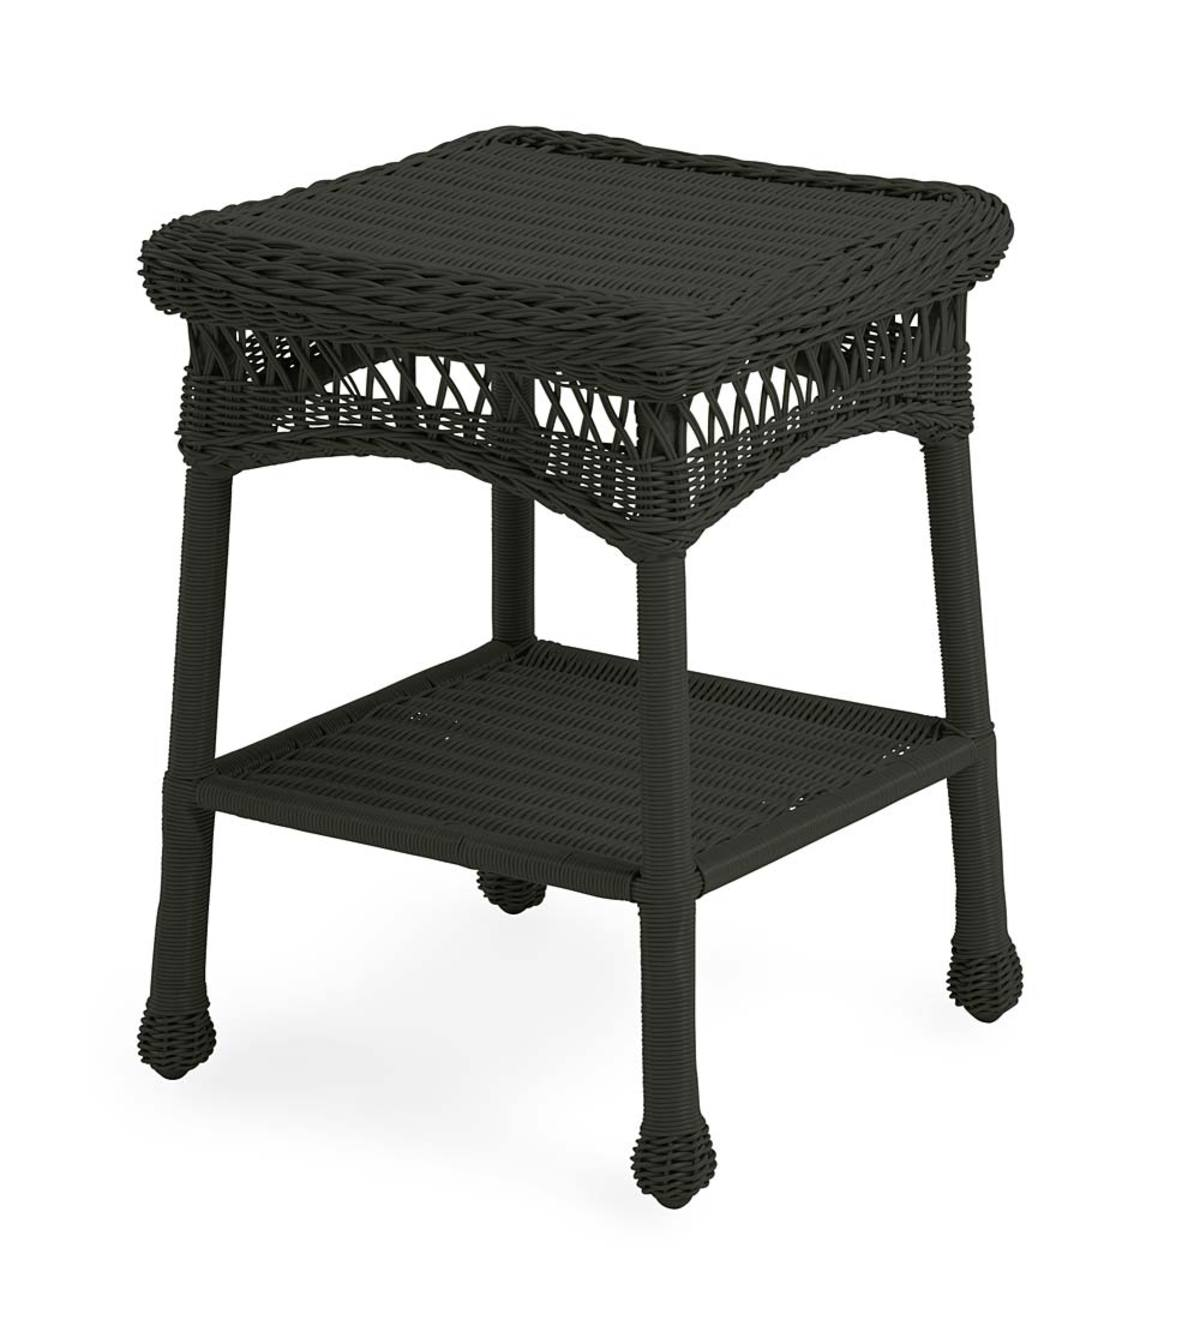 Easy Care Resin Wicker End Table - Black